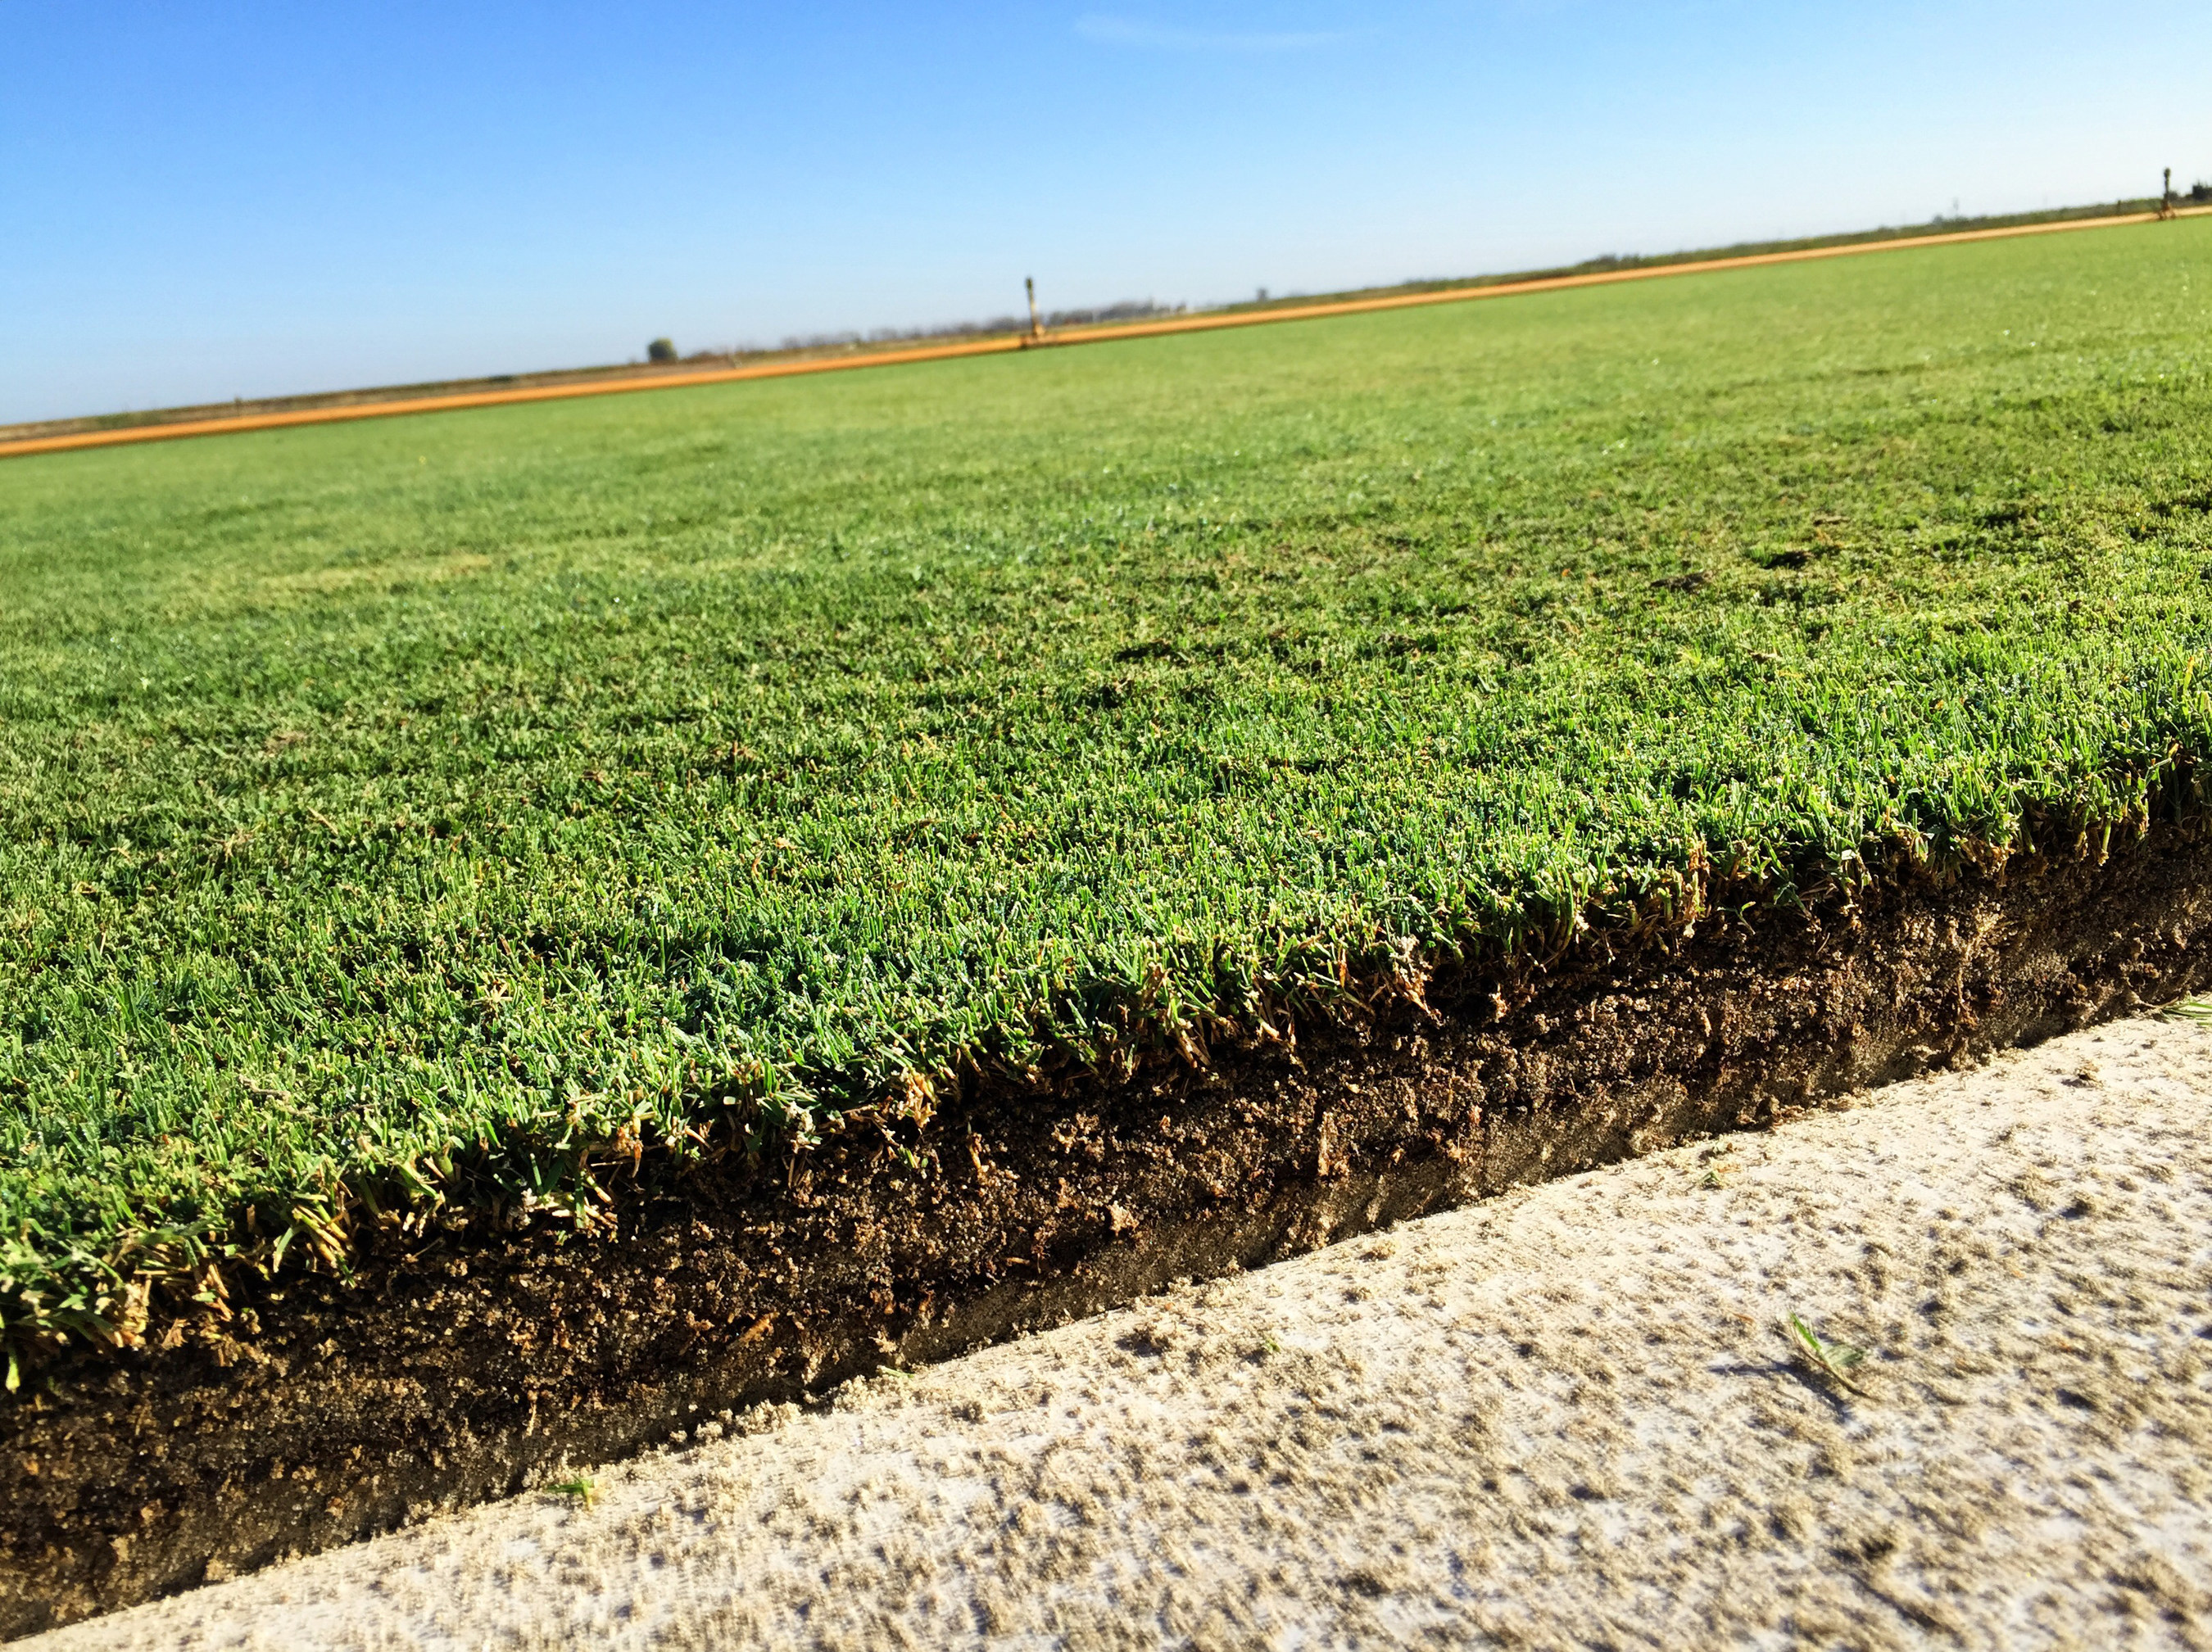 West Coast Turf S New Proprietary Sod Product Going To Super Bowl 50 At Levi Stadium